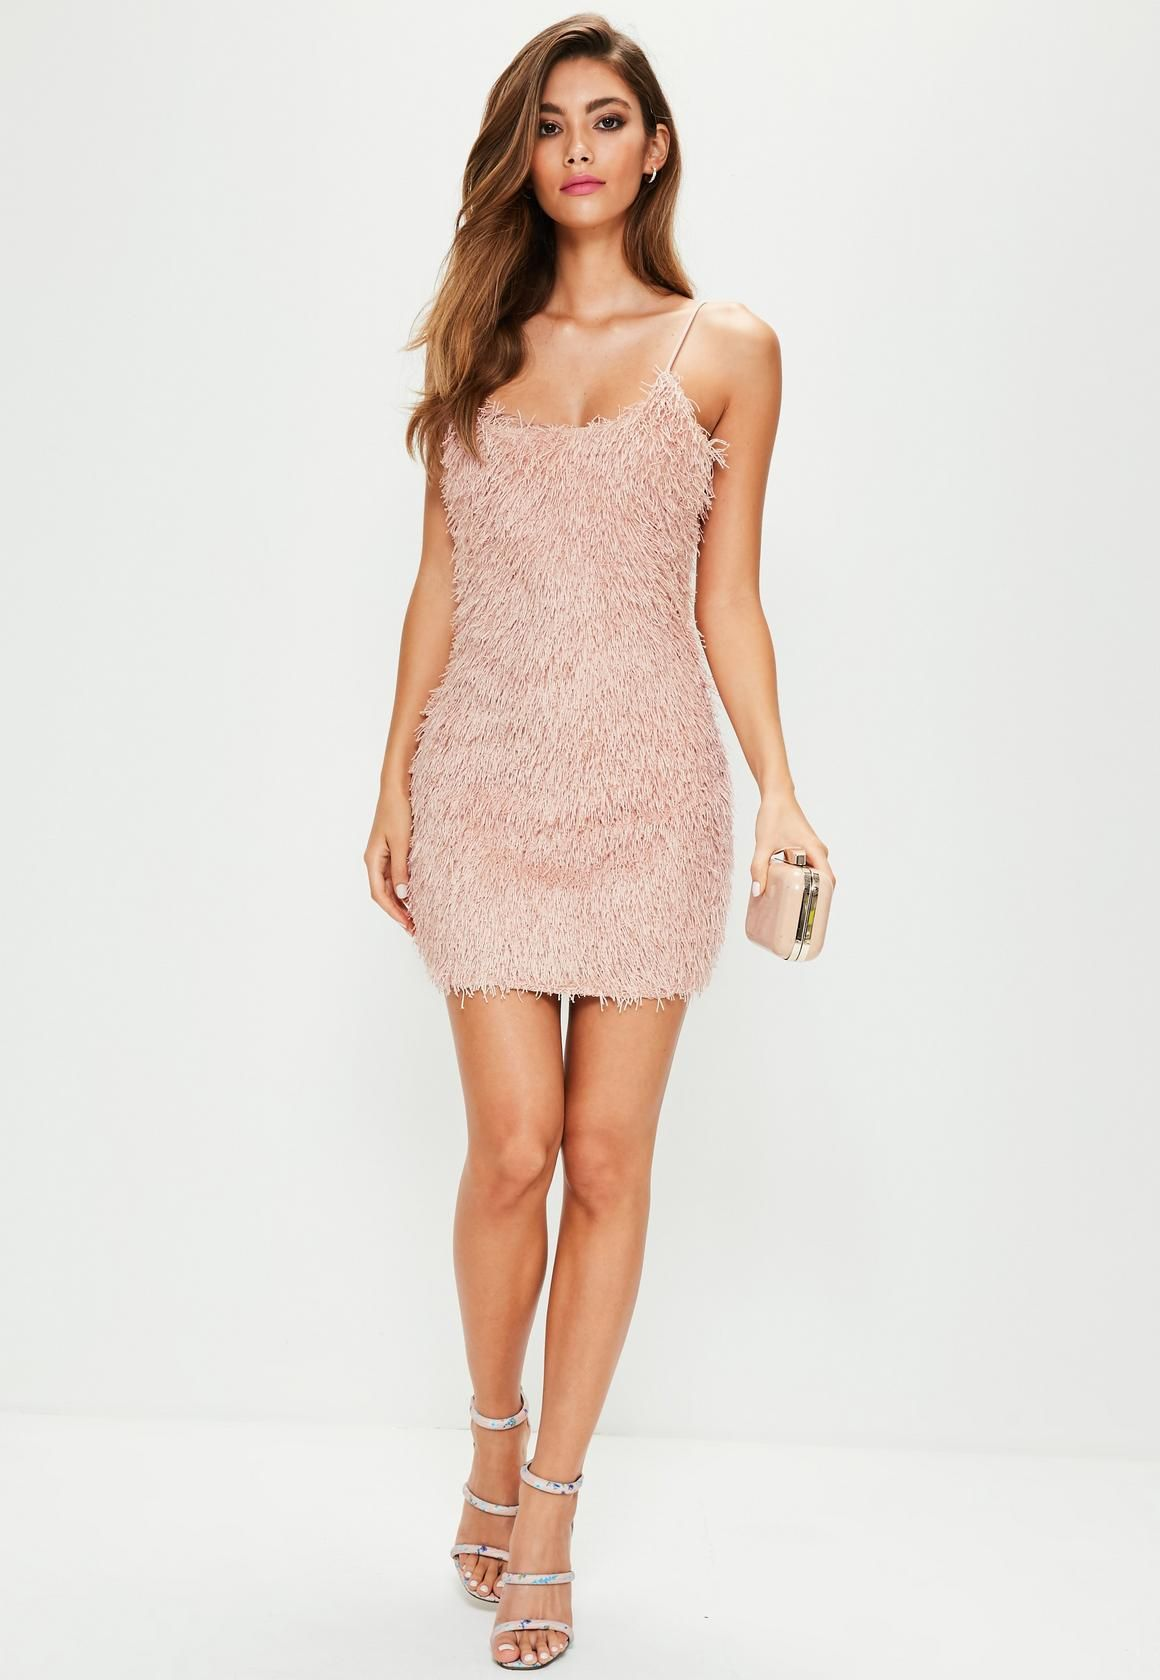 Missguided - Pink Strappy Fringe Bodycon Dress  4d79af3198